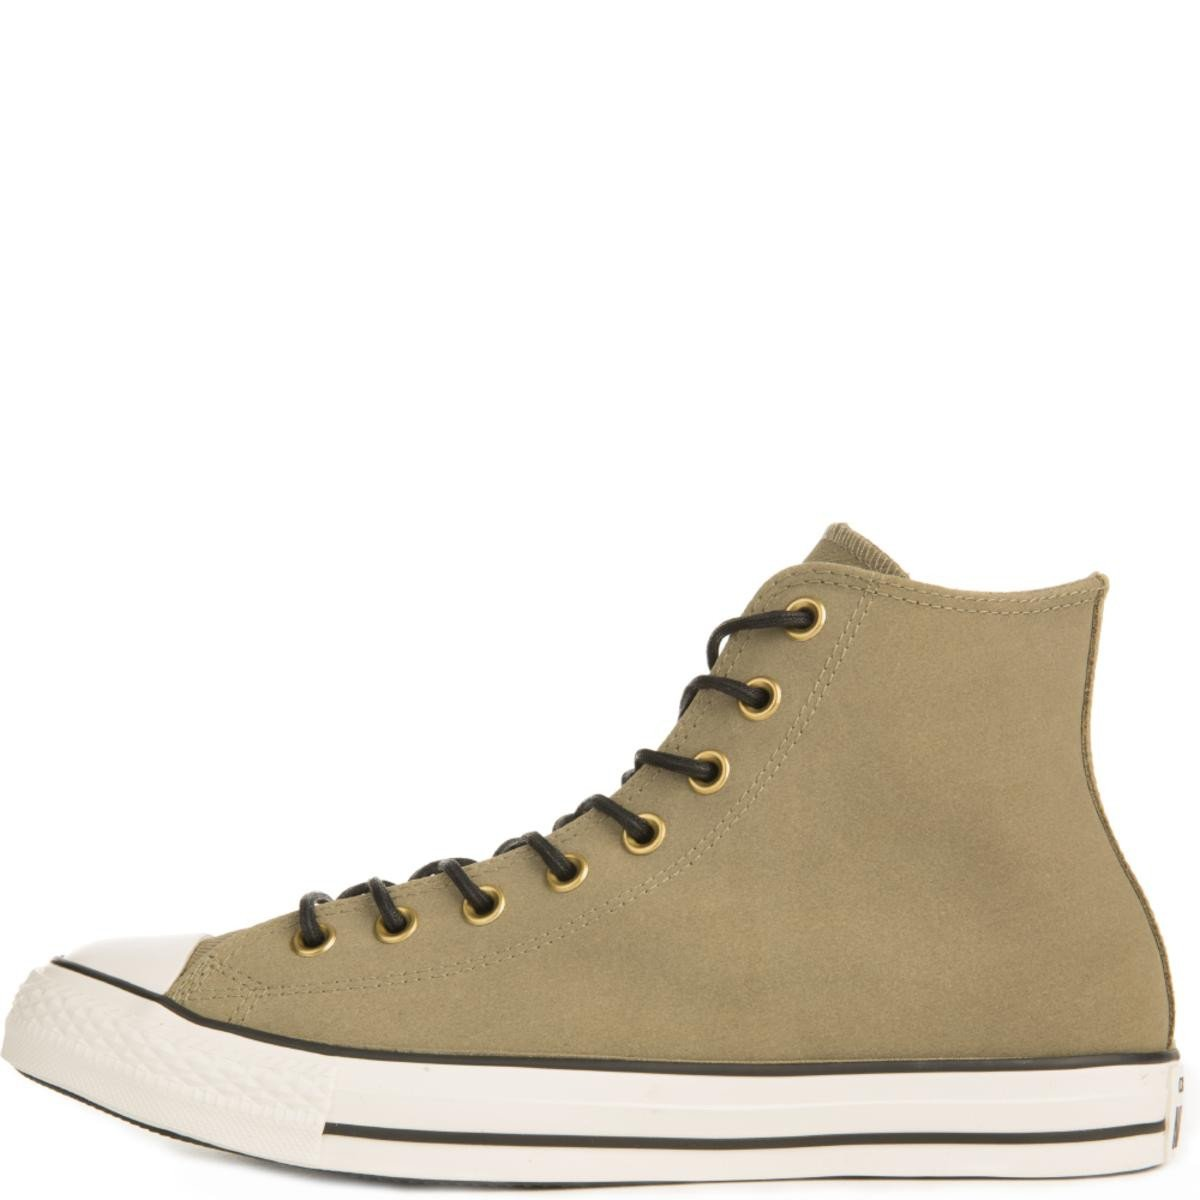 870899fb80fb Converse for Men  Chuck Taylor All Star Crafted Khaki Suede High Tops